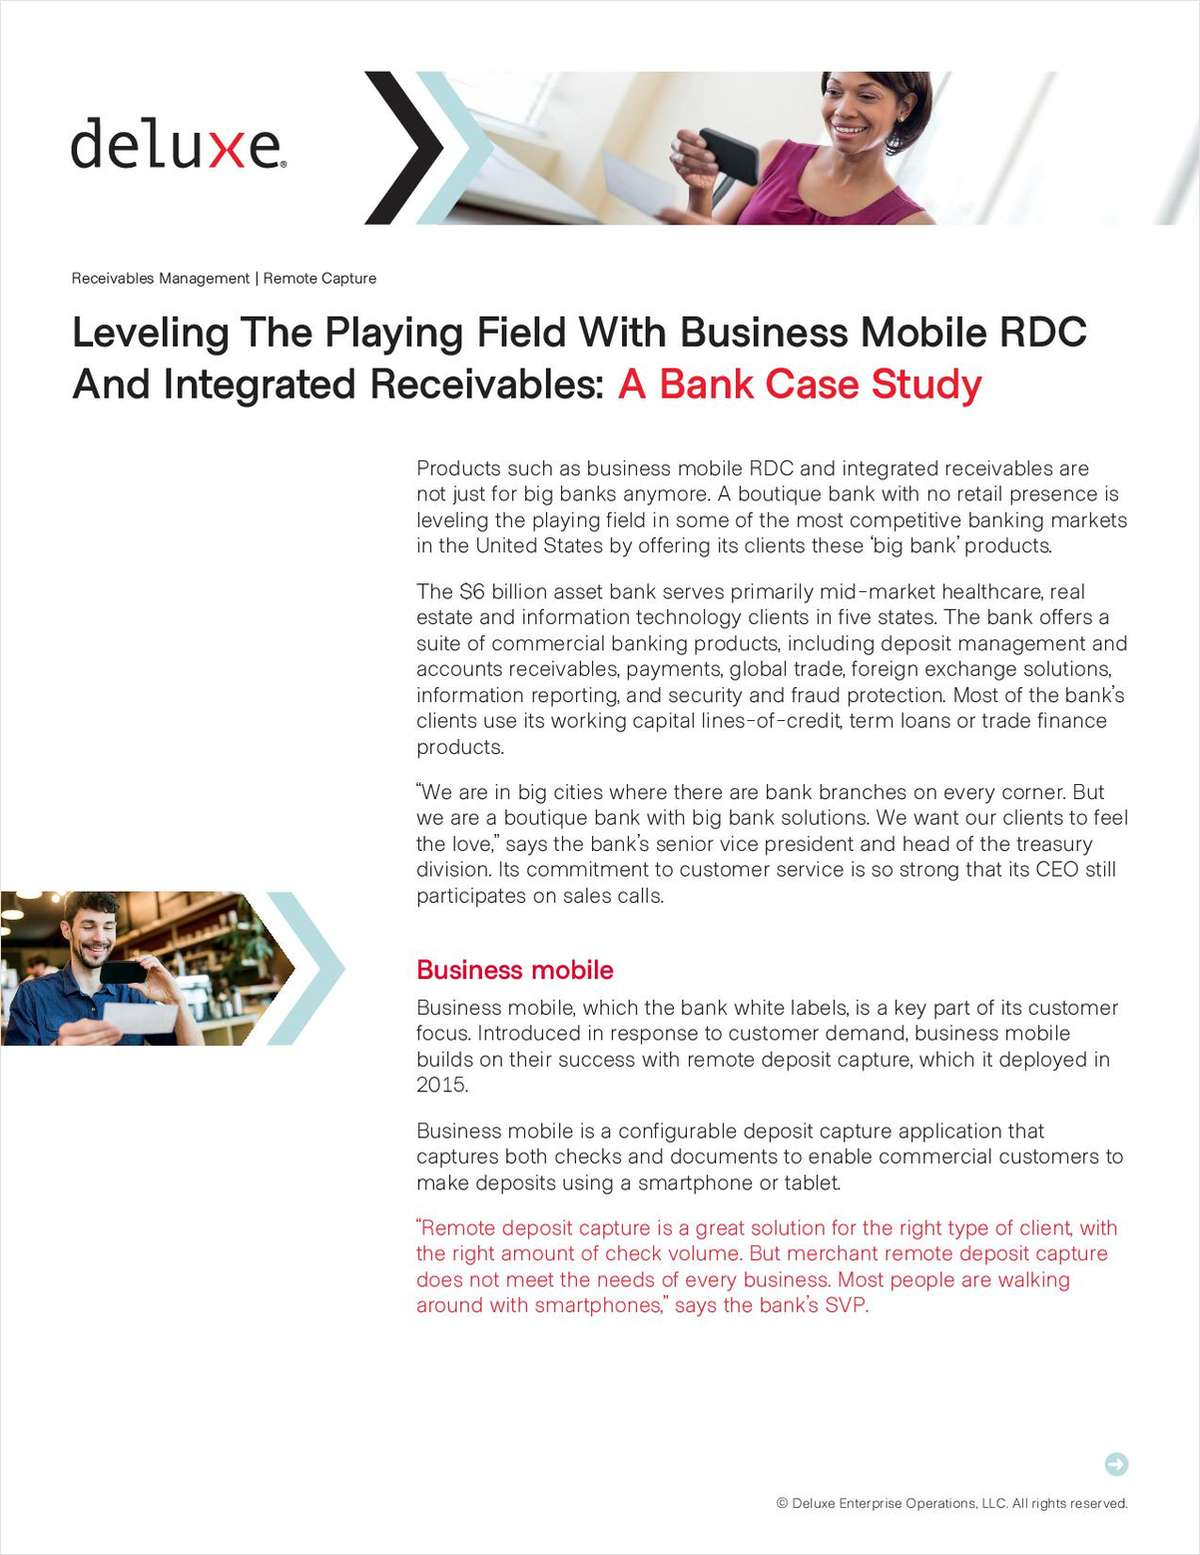 A Bank Case Study: Leveling the Playing Field with Business Mobile RDC and Integrated Receivables